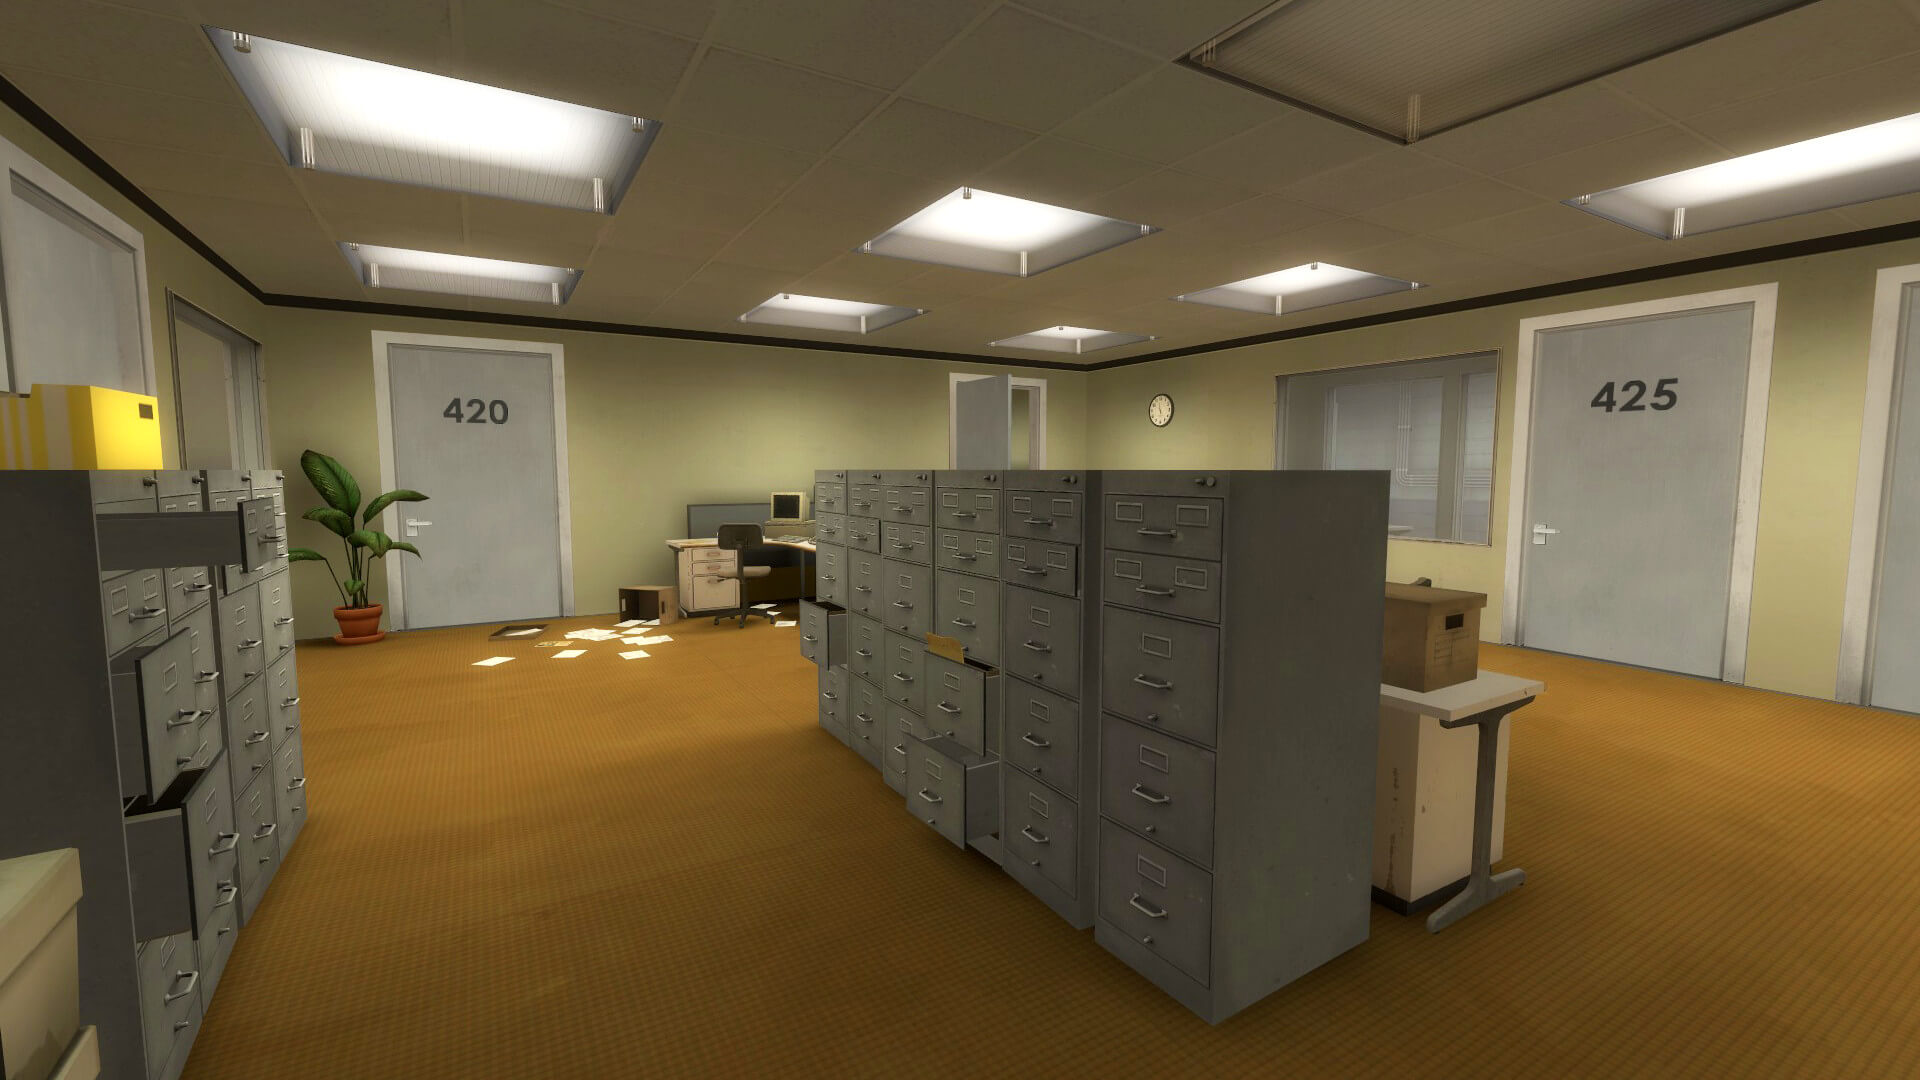 Image result for The Stanley Parable